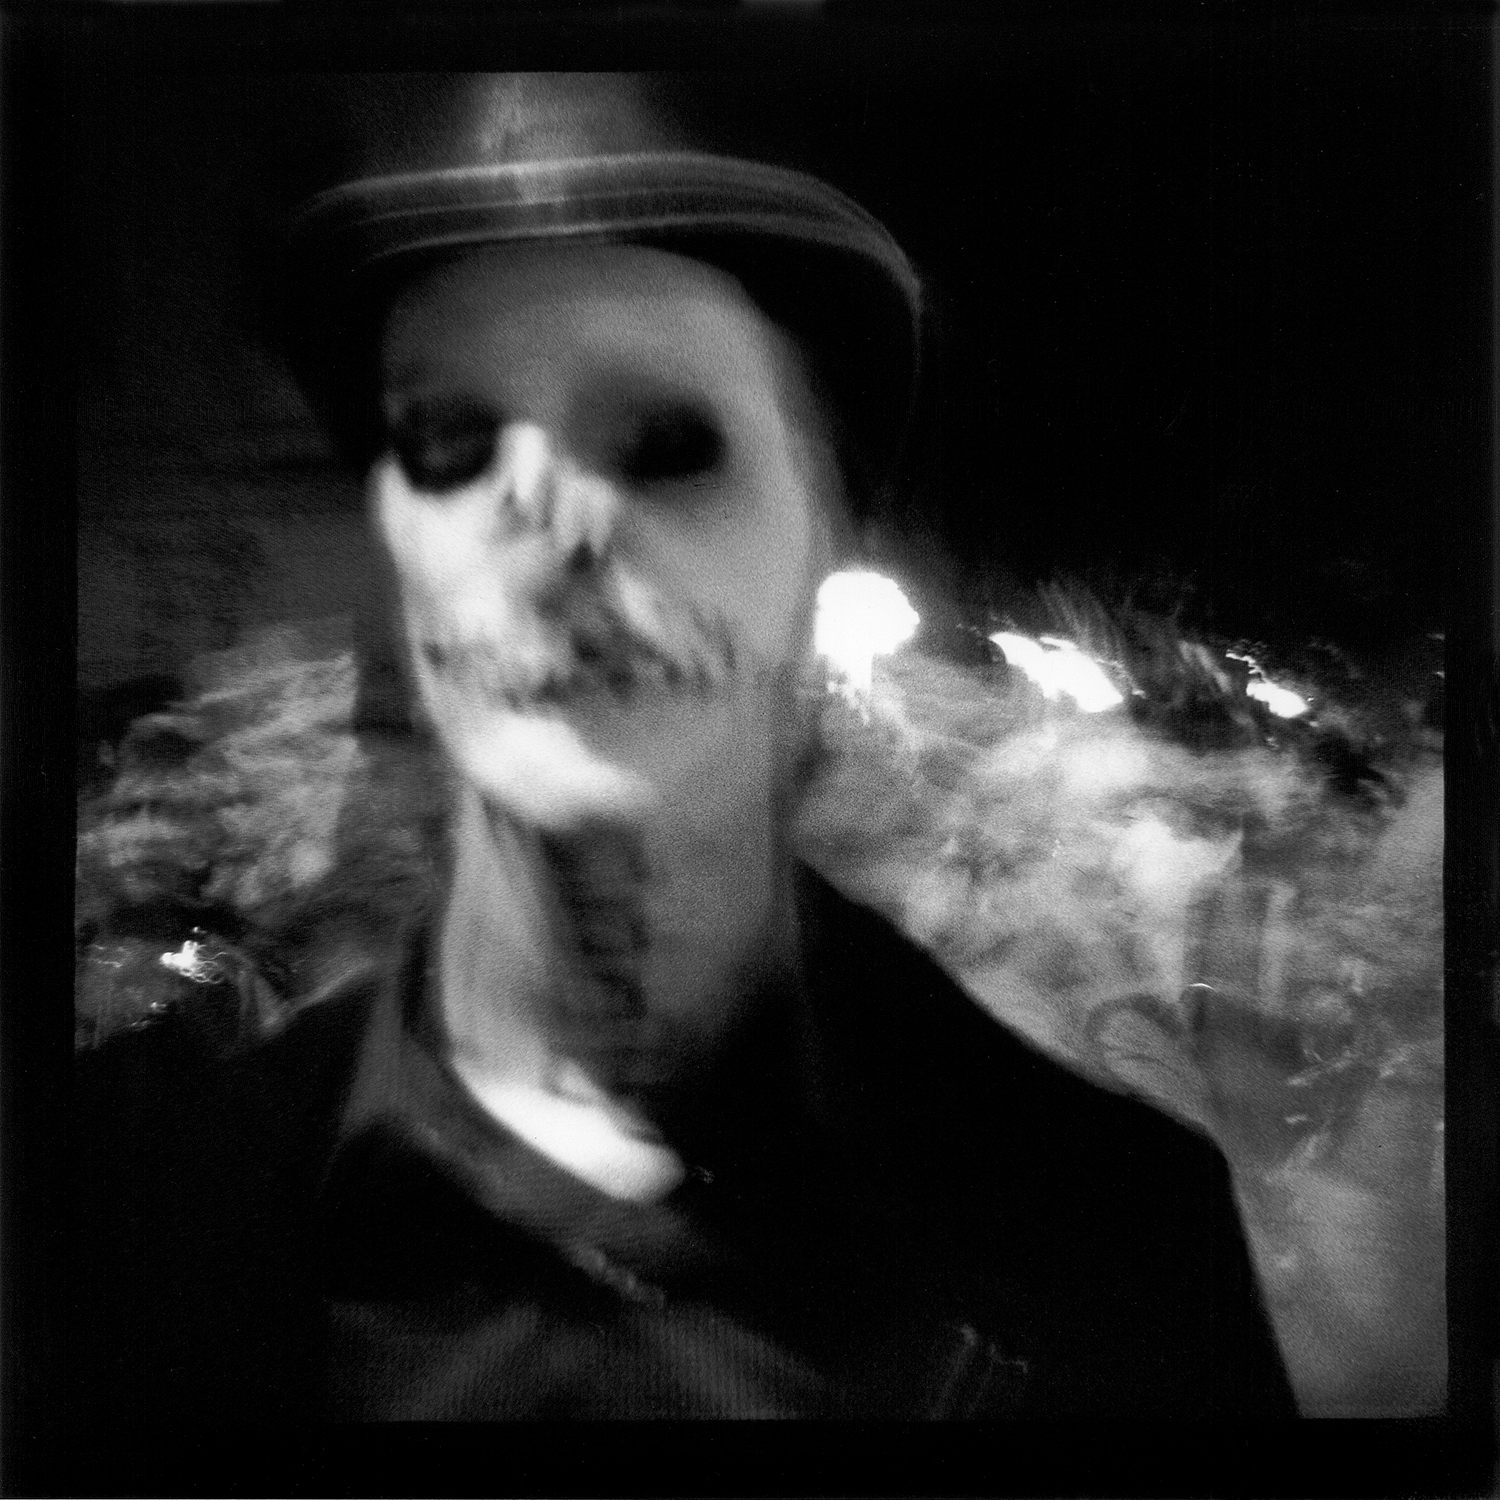 23_DayoftheDead_2010-01.jpg